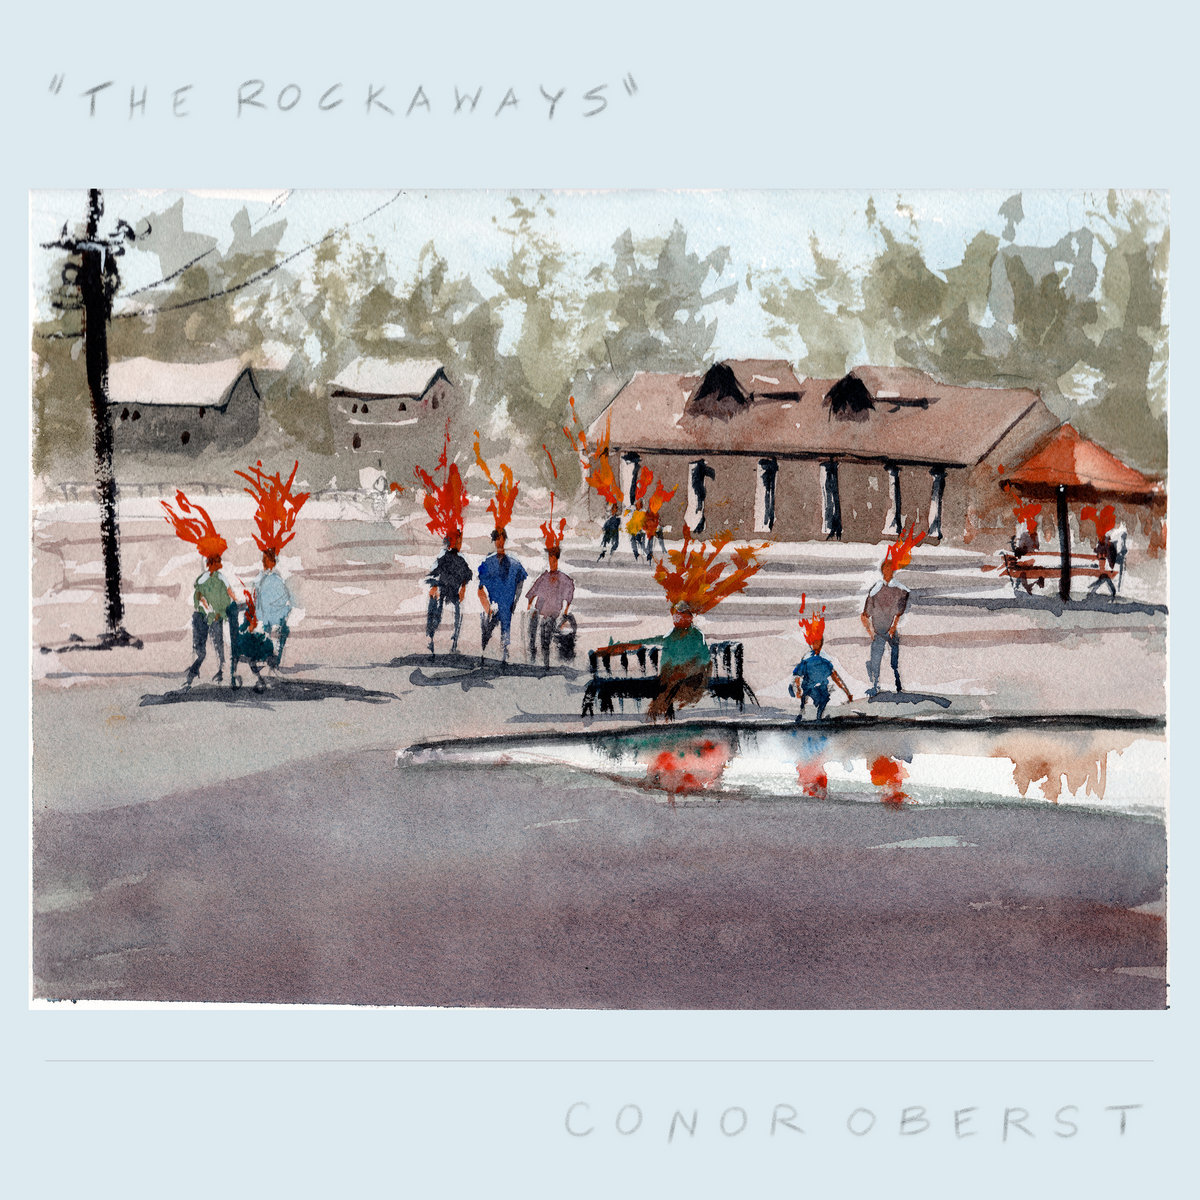 No one changes / the rockaways | conor oberst.